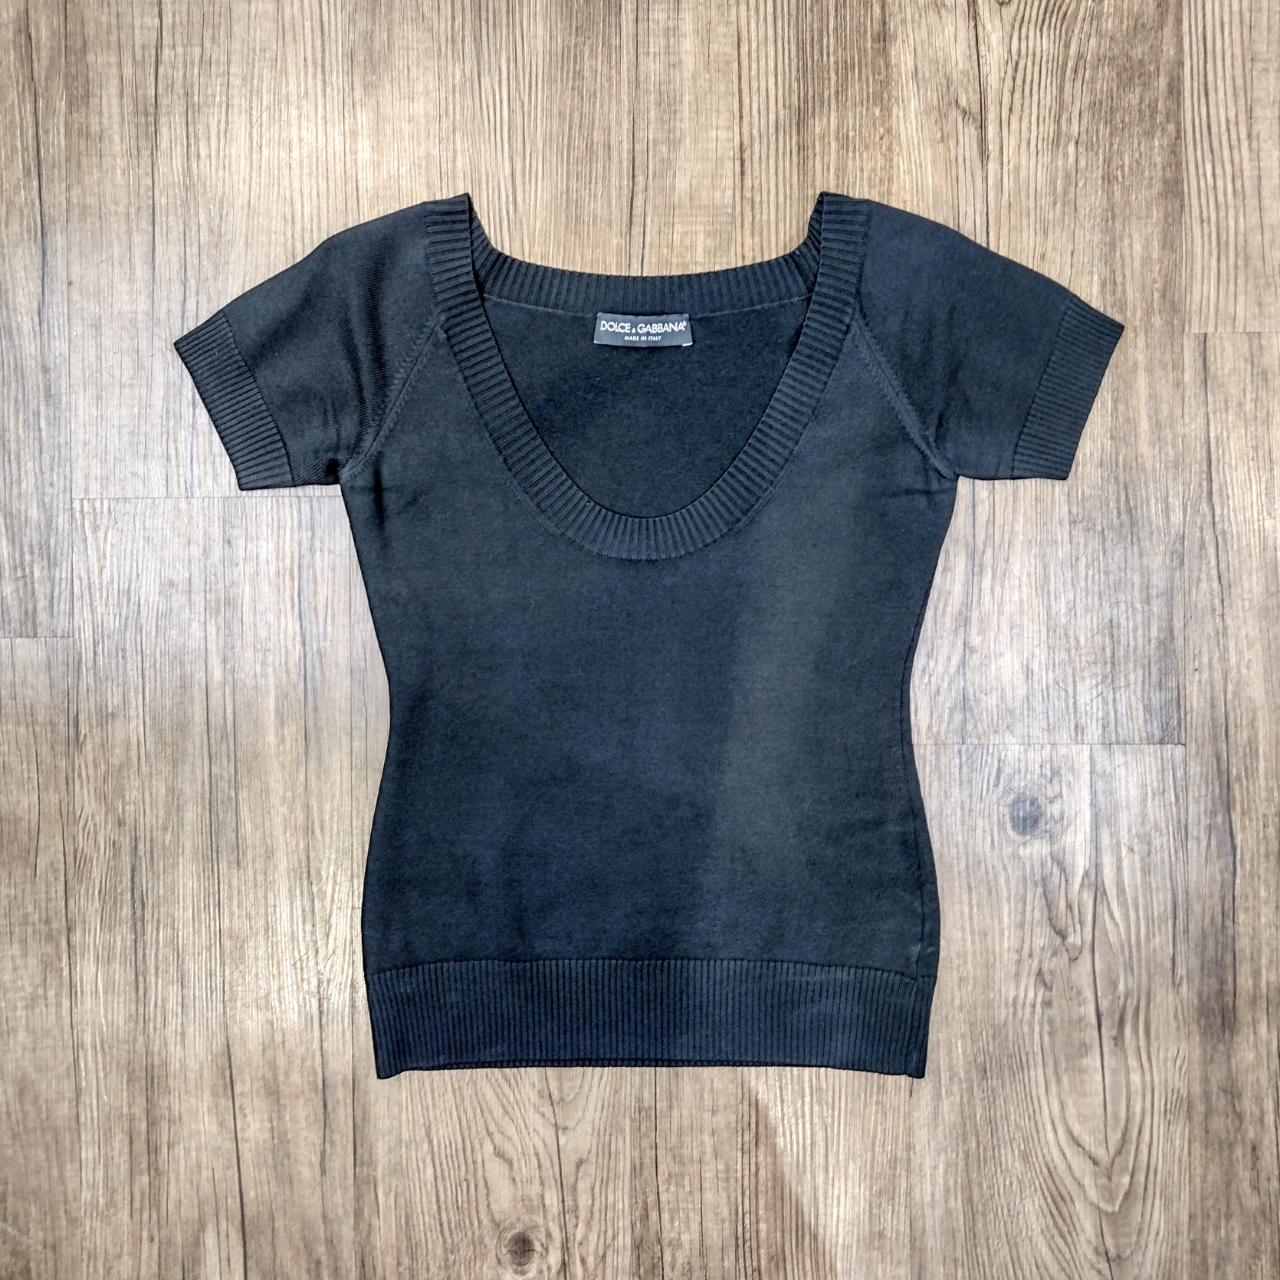 Product Image 1 - Dolce & Gabbana Top  ~Scoop neck,